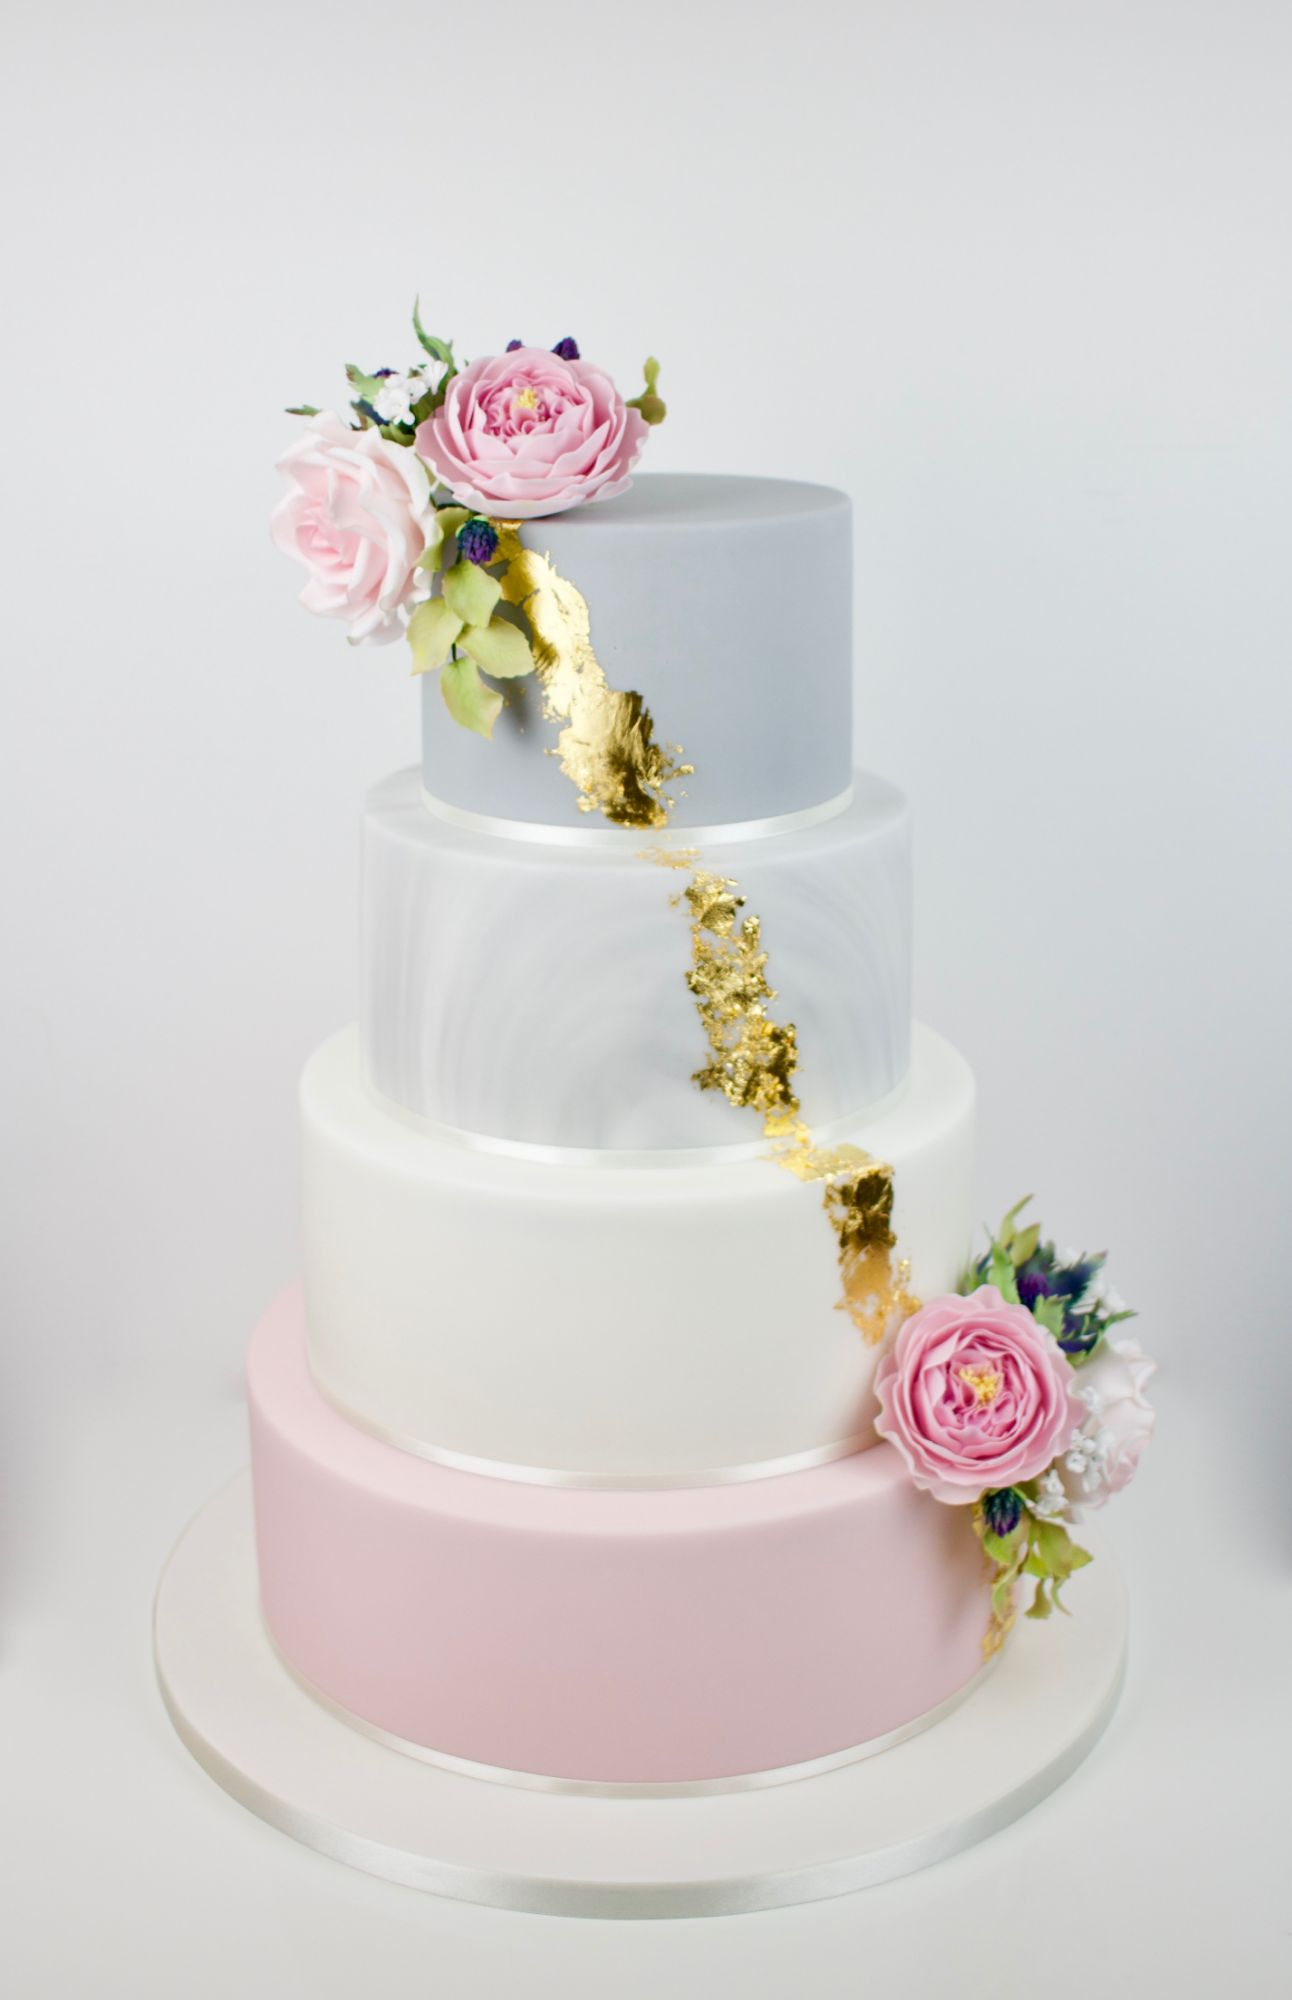 4 teir pale pink amd grey marble wedding cake with gold leaf and pink sugar flowers.